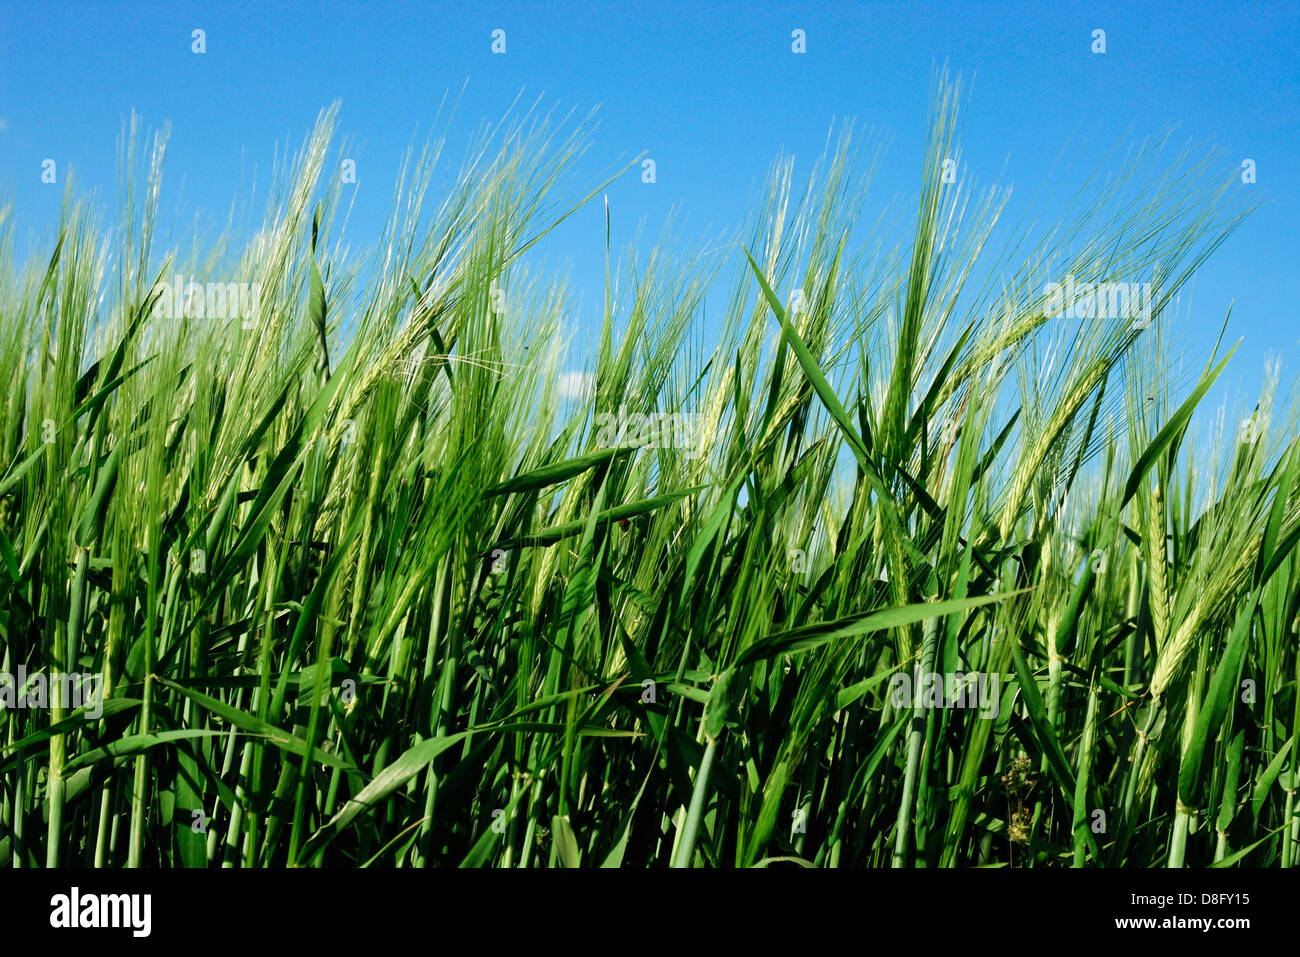 wheat field in sping - Stock Image